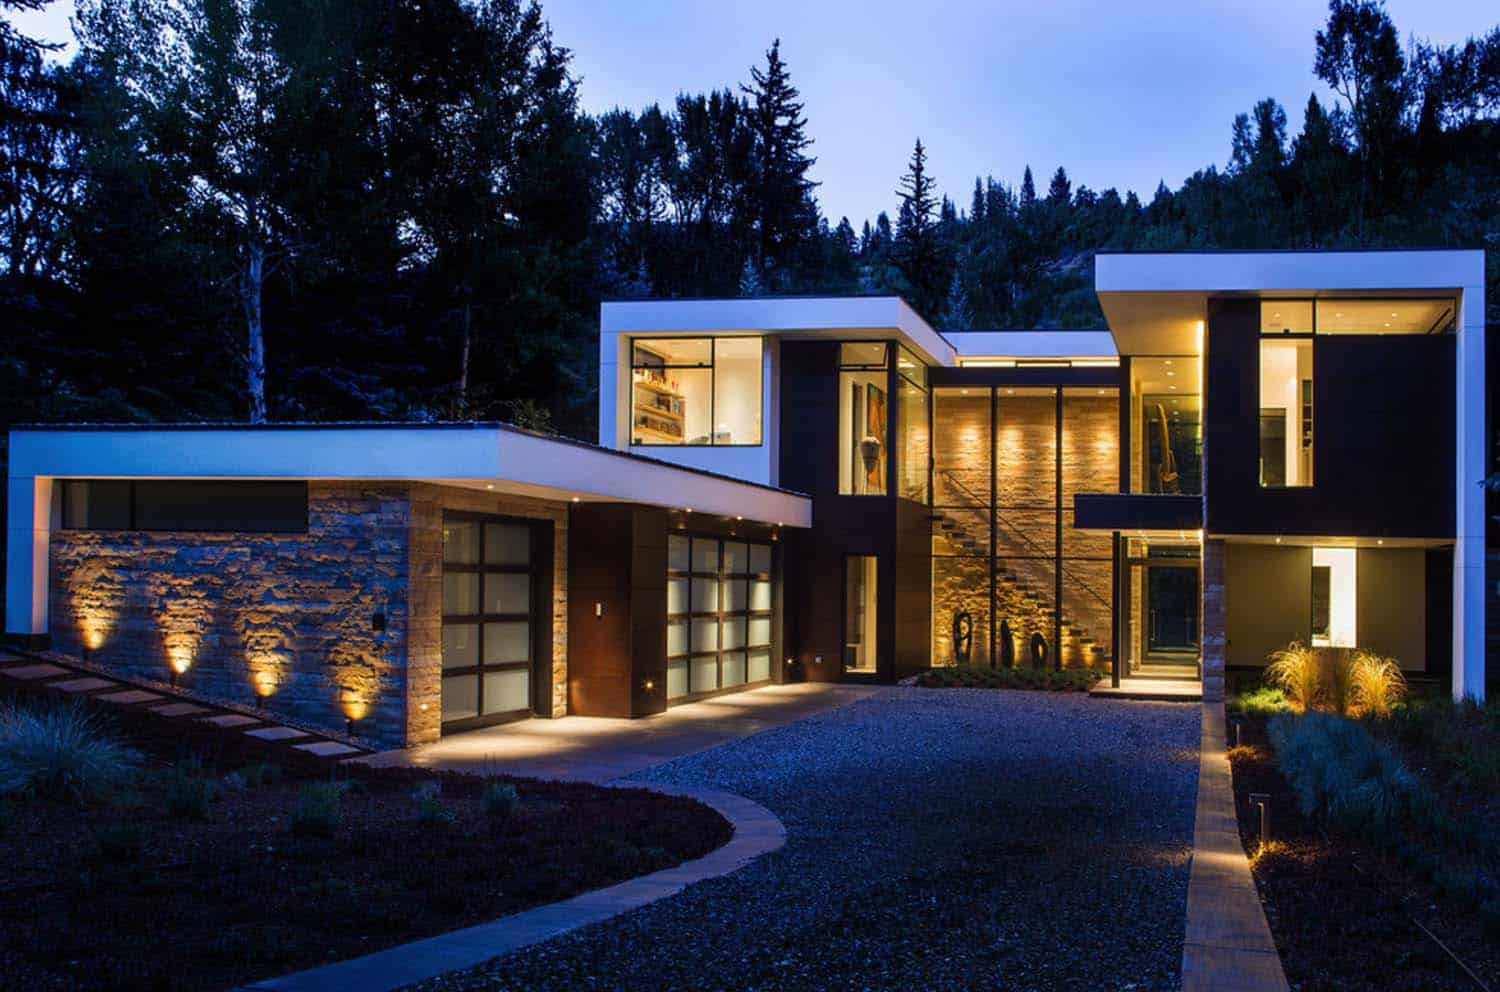 Contemporary Mountain Home-Charles Cunniffe Architects-29-1 Kindesign